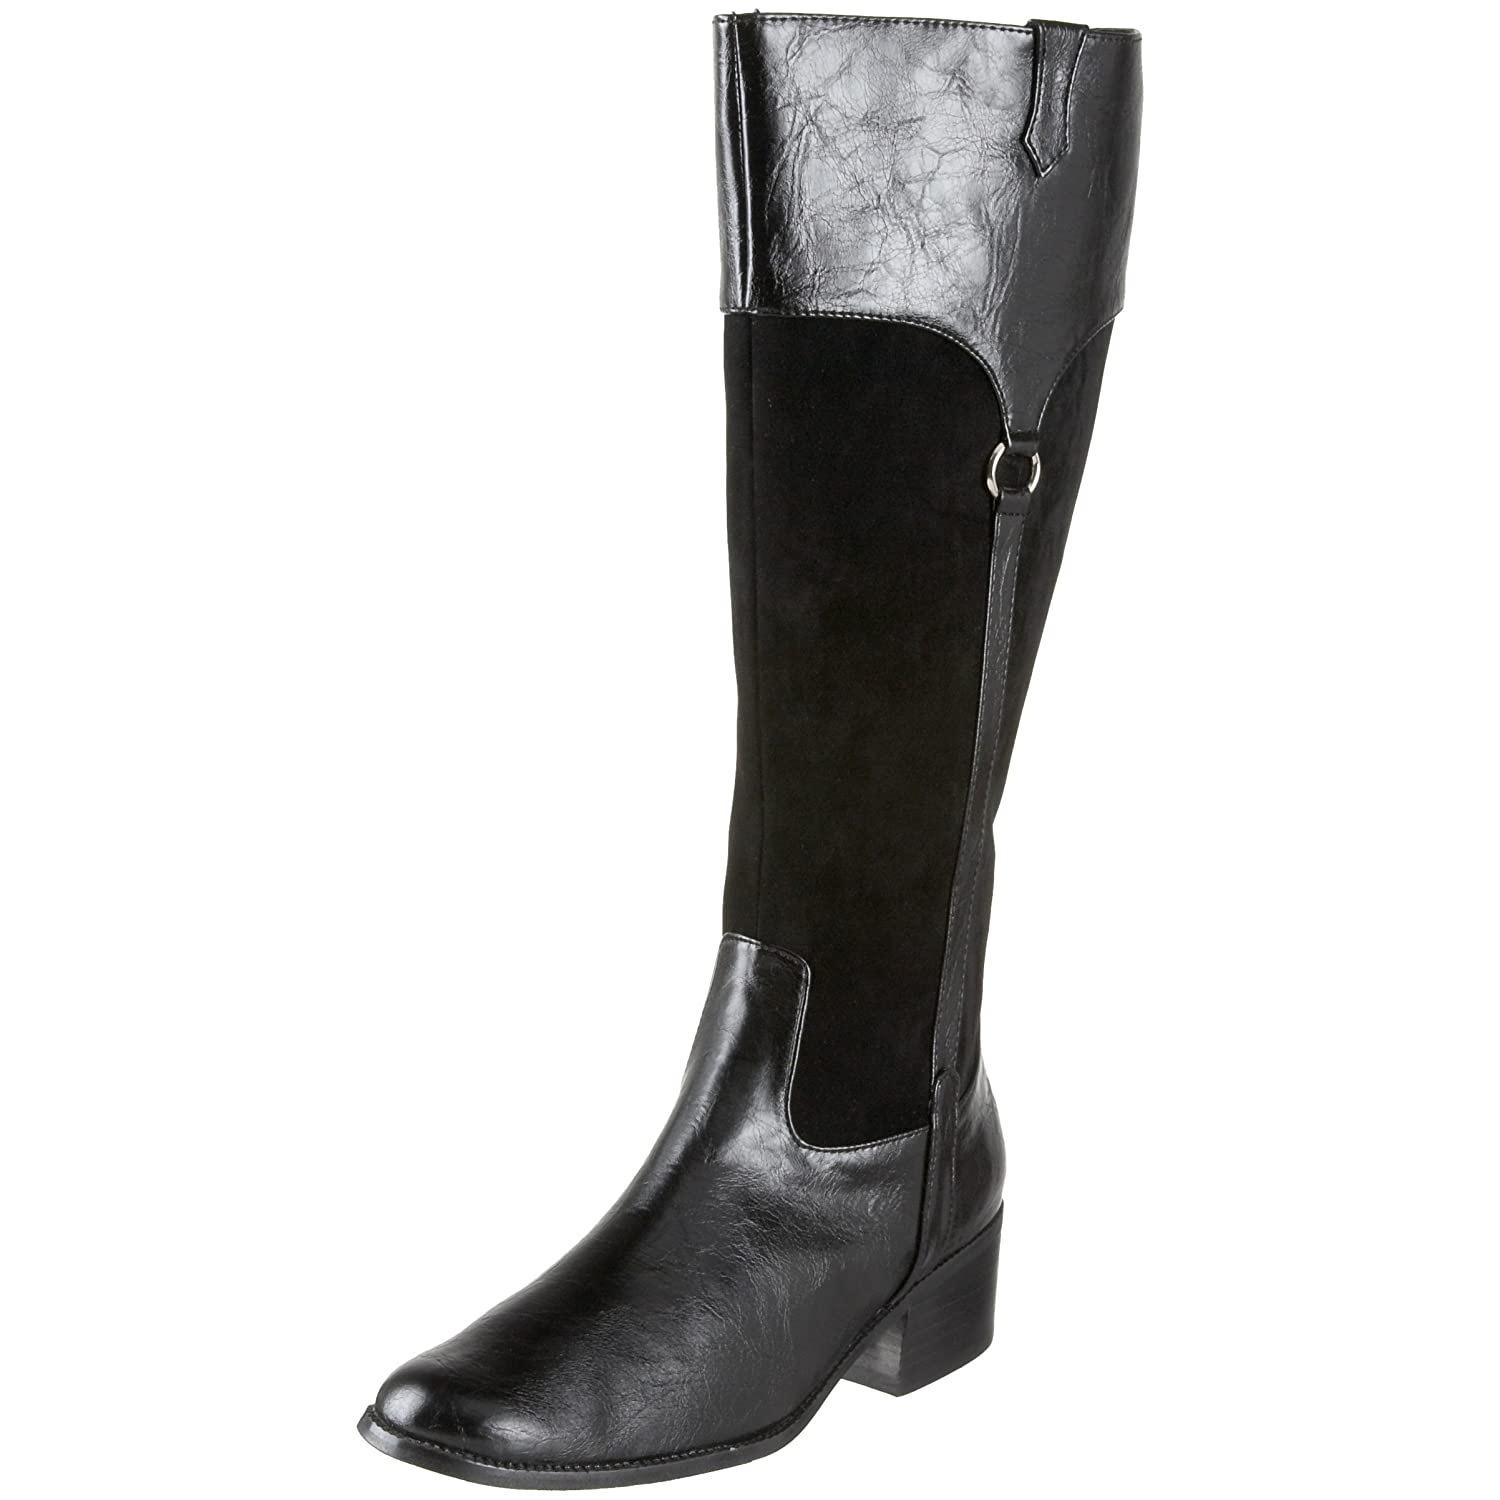 Annie Shoes Rocco Knee High Boot from endless.com